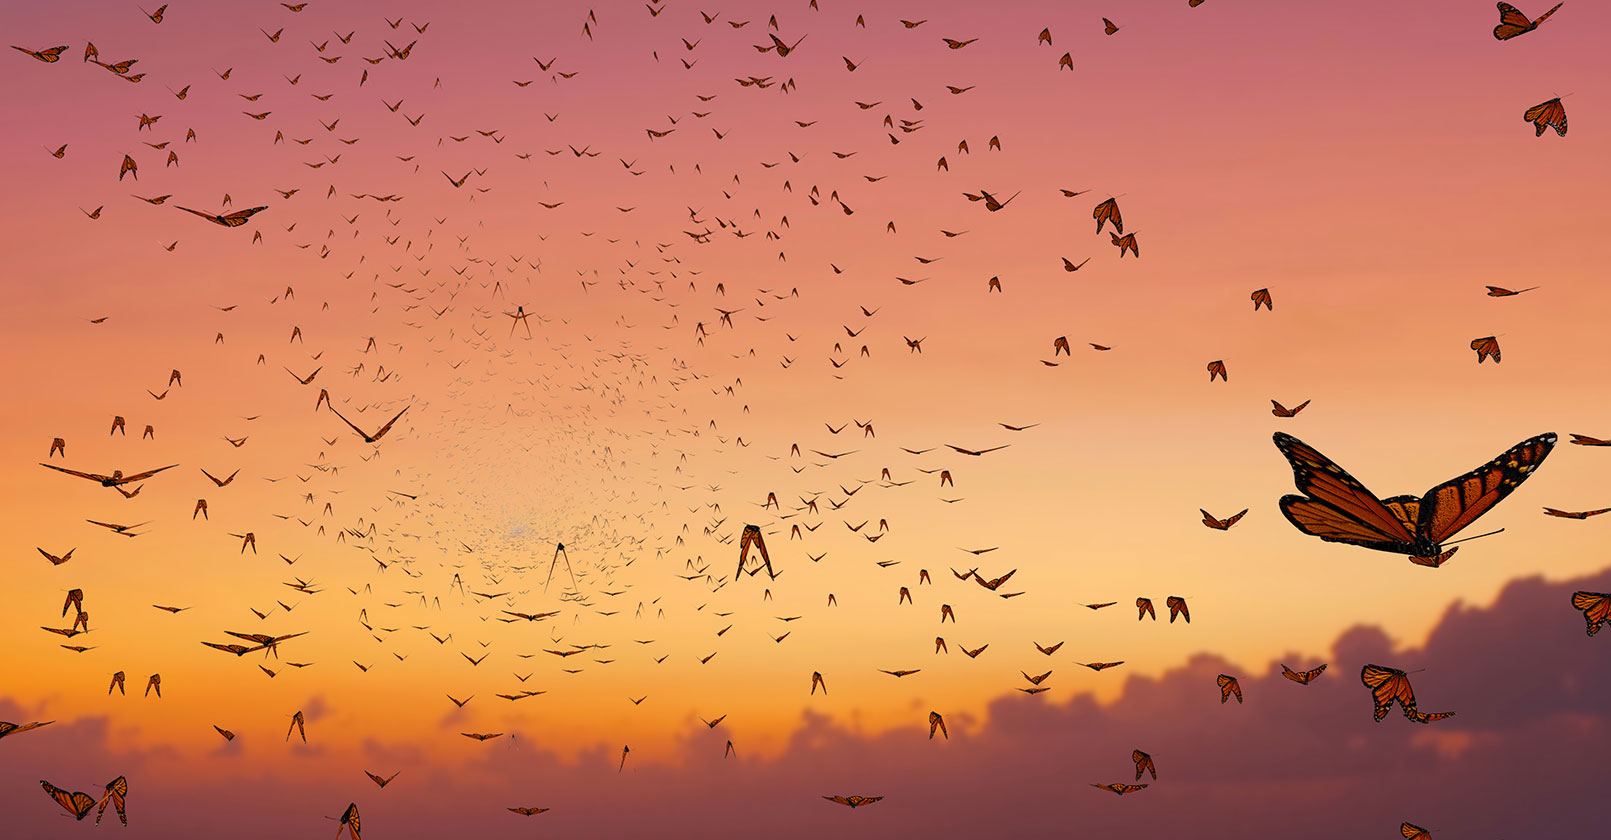 Monarch butterflies flying at sunset